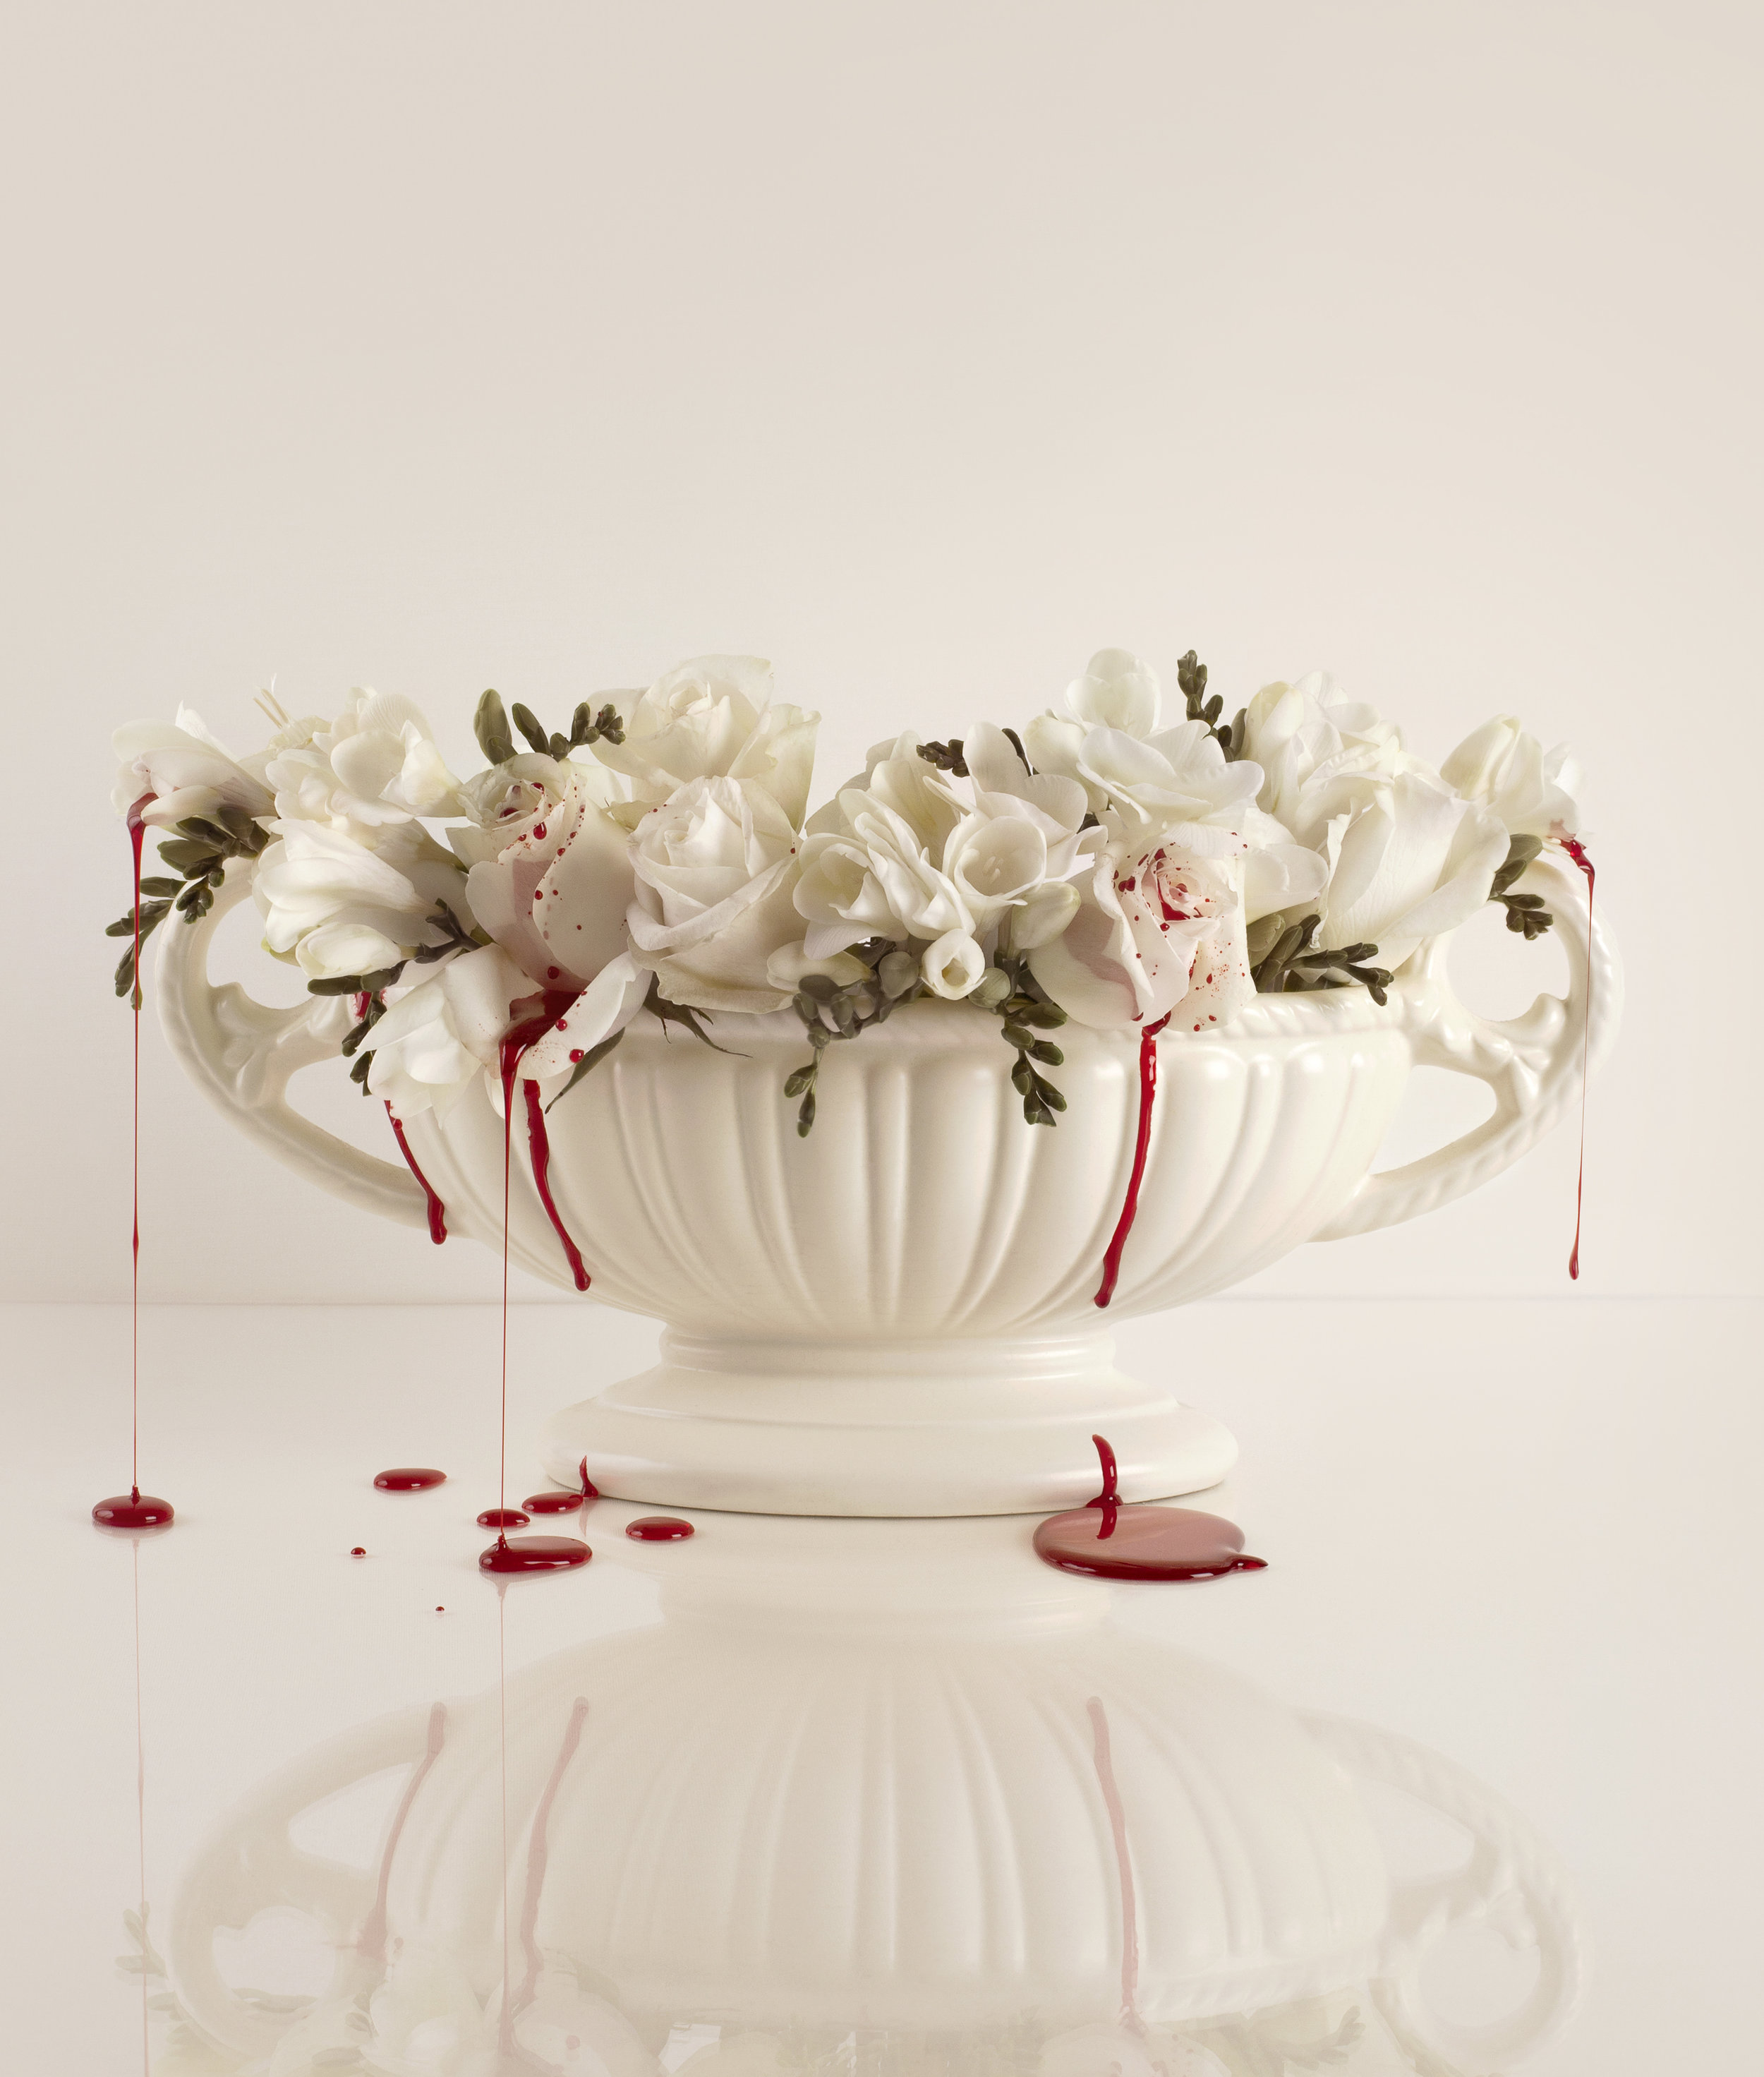 Blood & Roses (2) - colour photograph, edition of 5 + AP